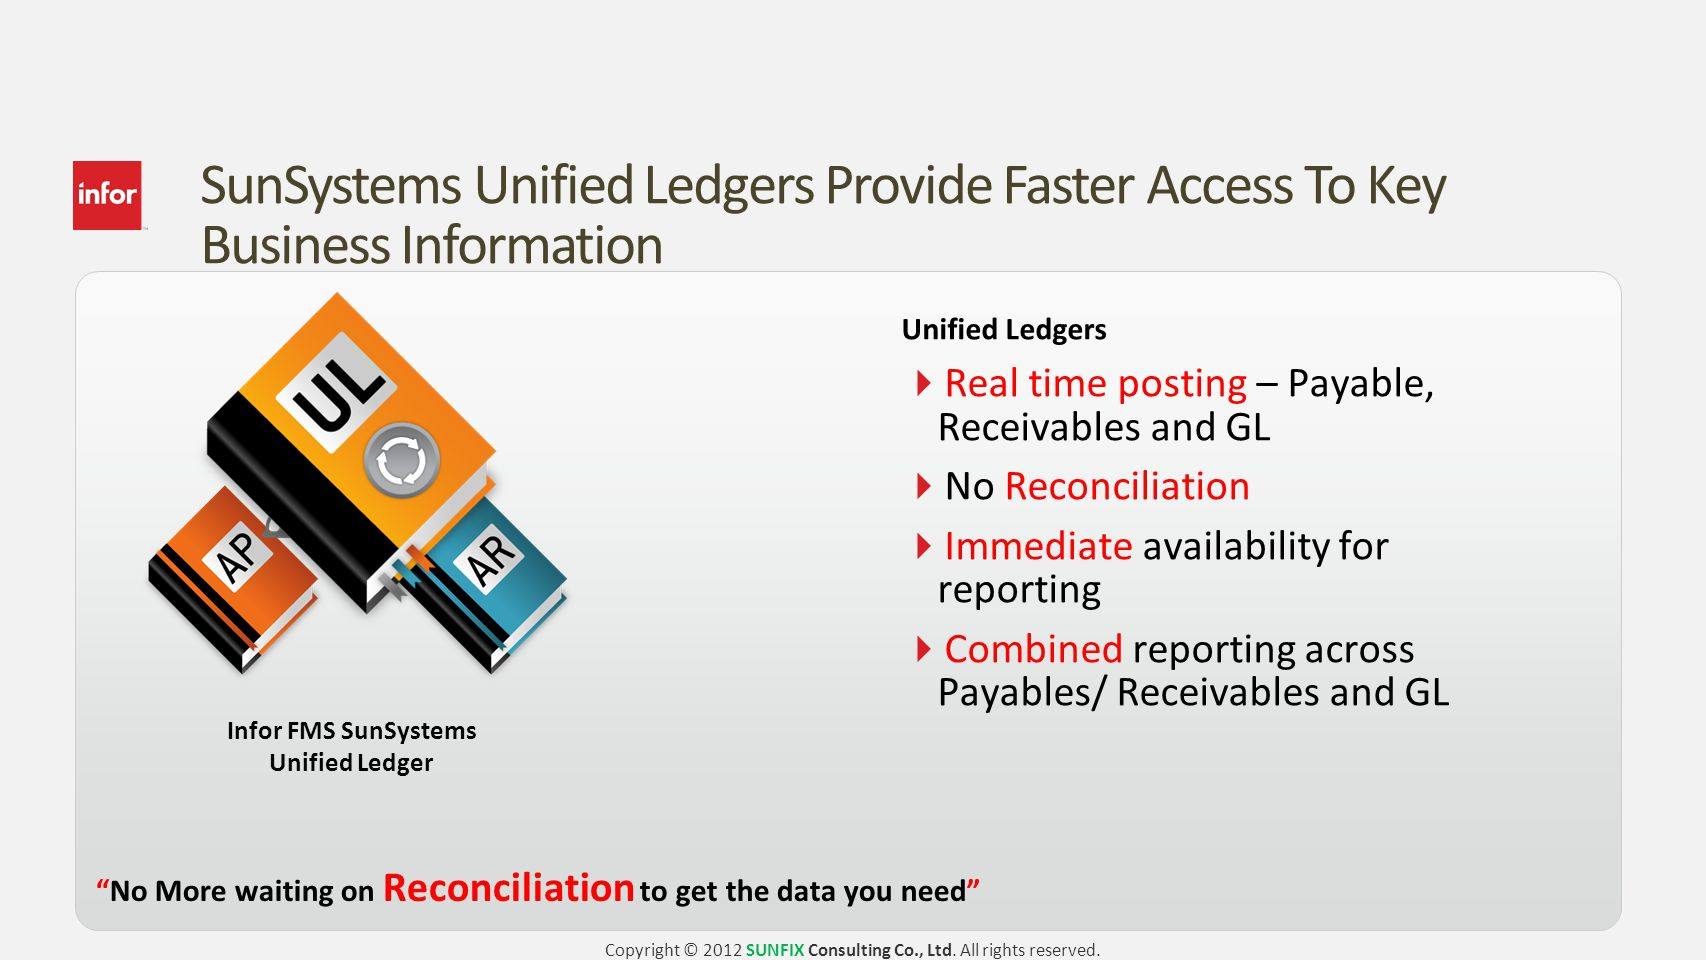 Infor FMS SunSystems Unified Ledger Unified Ledgers  Real time posting – Payable, Receivables and GL  No Reconciliation  Immediate availability for reporting  Combined reporting across Payables/ Receivables and GL No More waiting on Reconciliation to get the data you need SunSystems Unified Ledgers Provide Faster Access To Key Business Information Copyright © 2012 SUNFIX Consulting Co., Ltd.